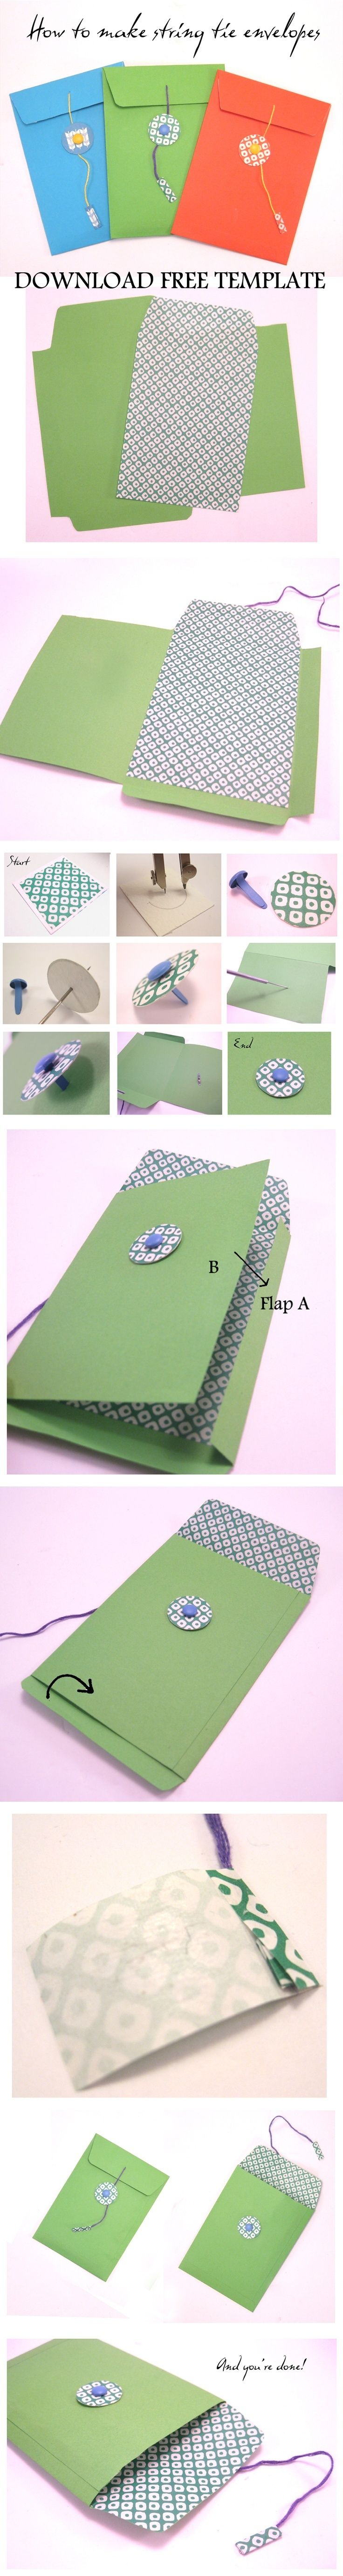 These super easy string tie envelopes will amaze your guests with their professional look. You can customise them to match your Wedding Stationery or your wedding day colour palette. Use them to package your wedding favours or even the rings!